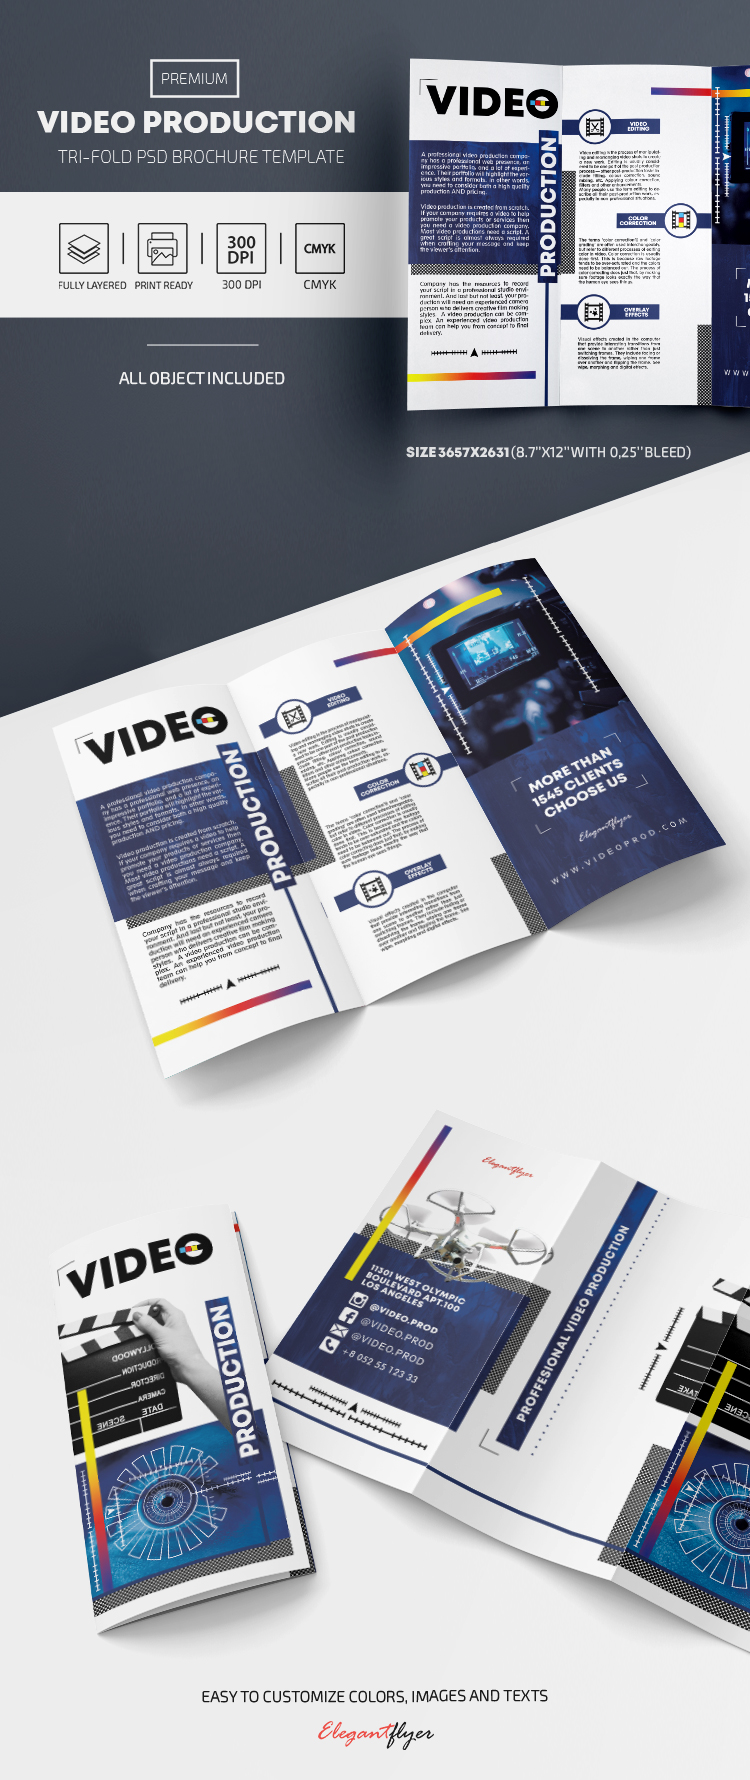 Video Production – Premium PSD Tri-Fold Brochure Template